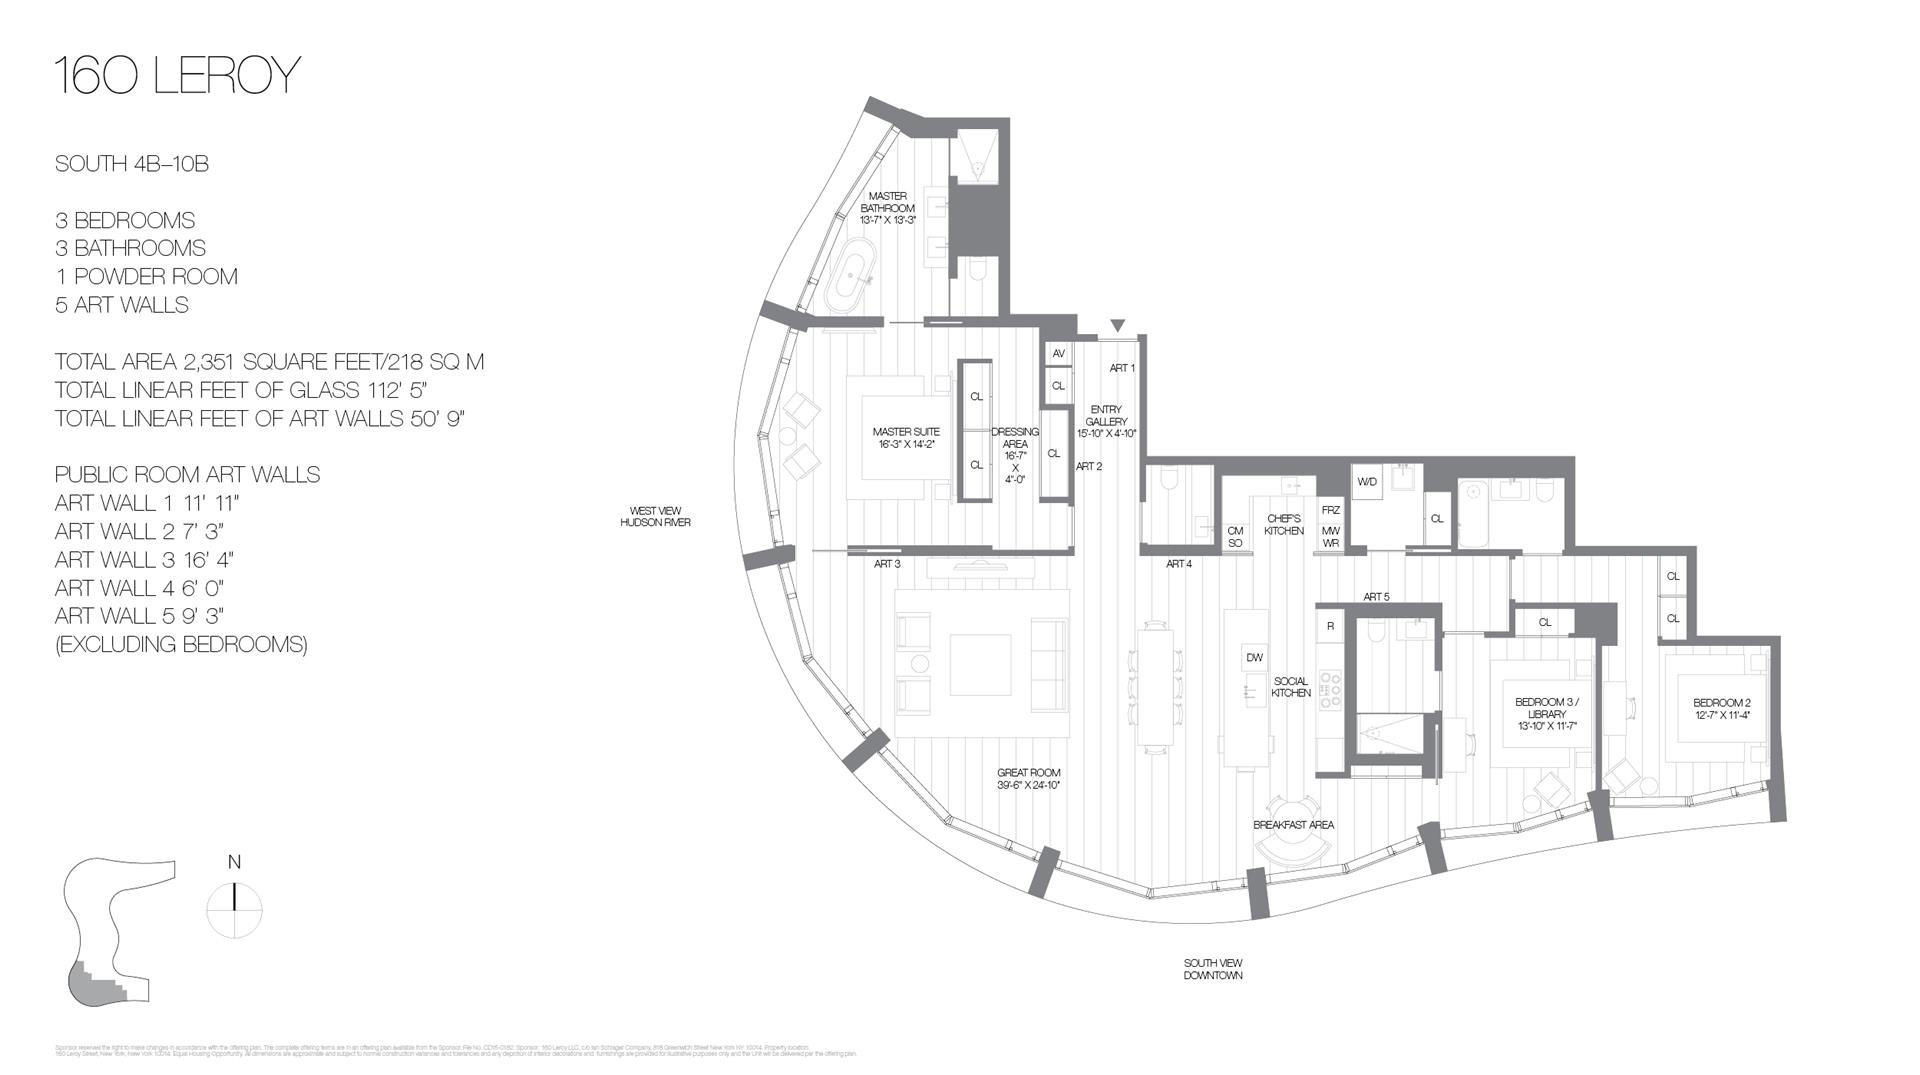 Floor plan of 160 Leroy St, SOUTH9B - West Village - Meatpacking District, New York